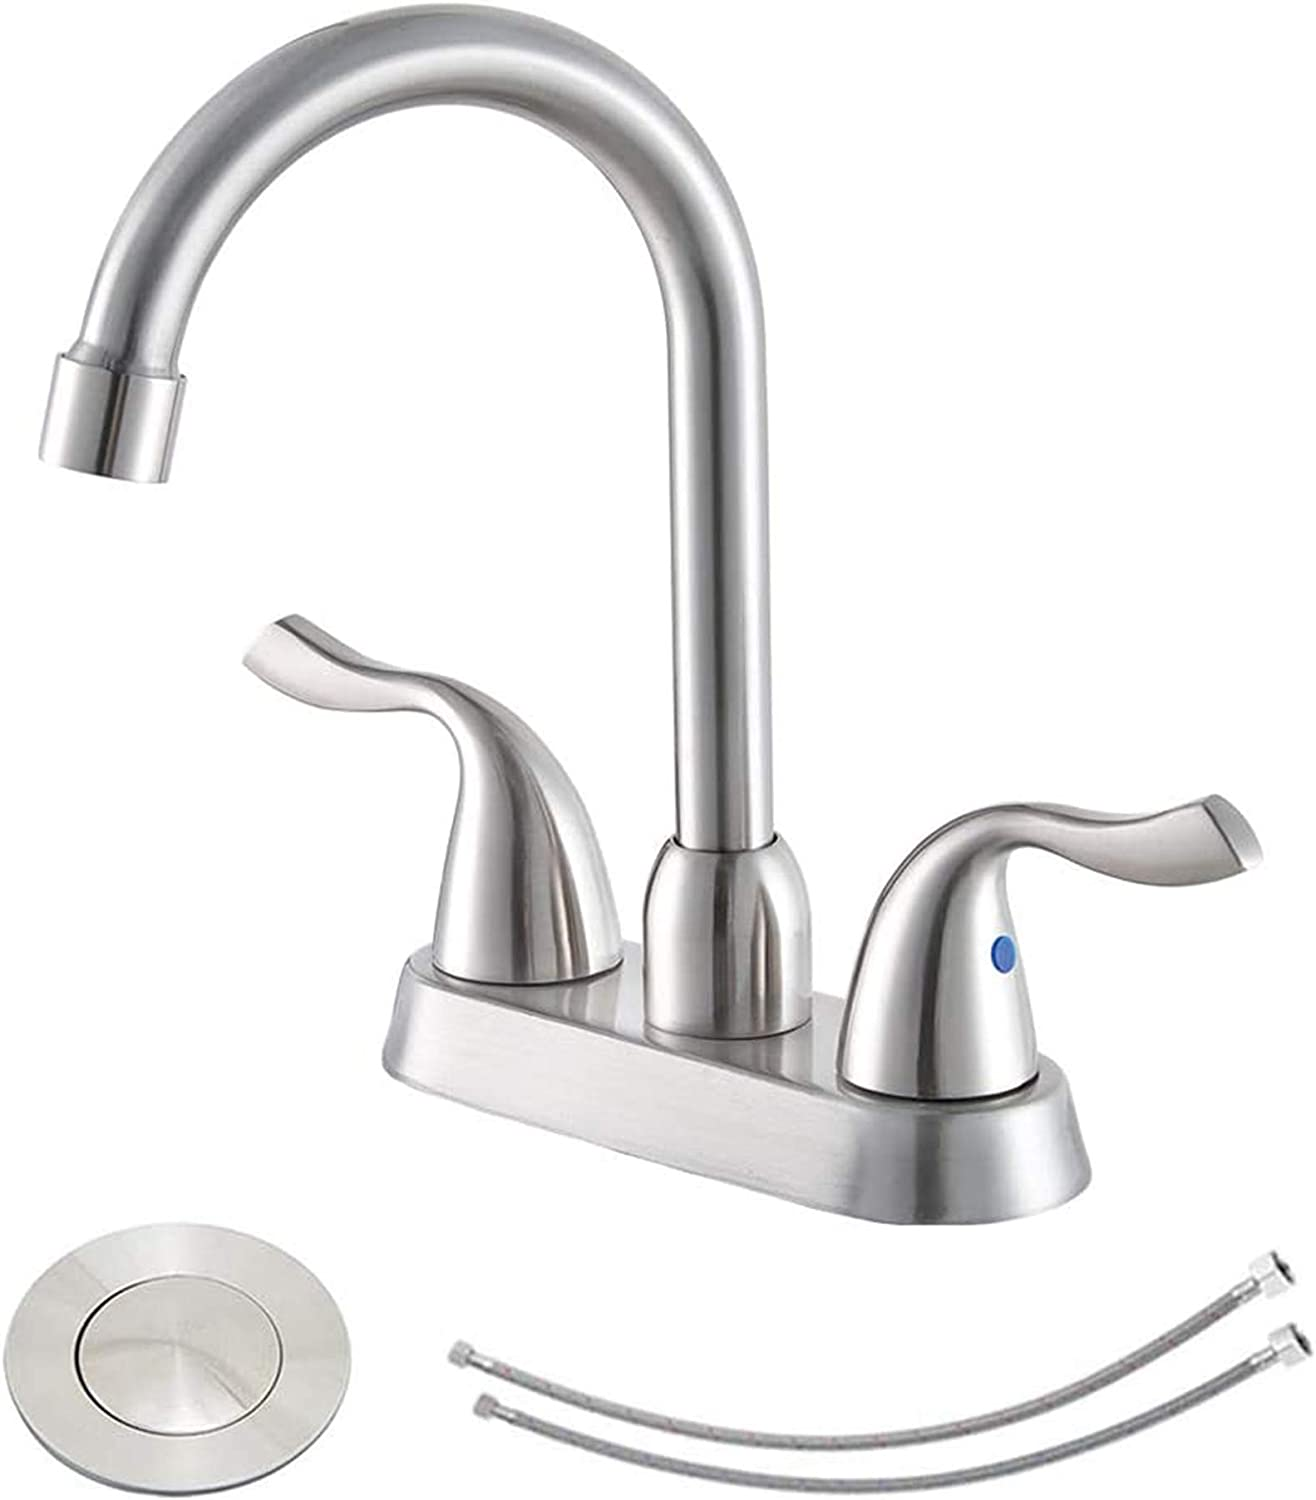 Hotis Commercial Two Handle Brushed Nickel Bathroom Faucet, Lavatory Bathroom Vanity Faucets with Water Supply Lines & Pop Up Drain